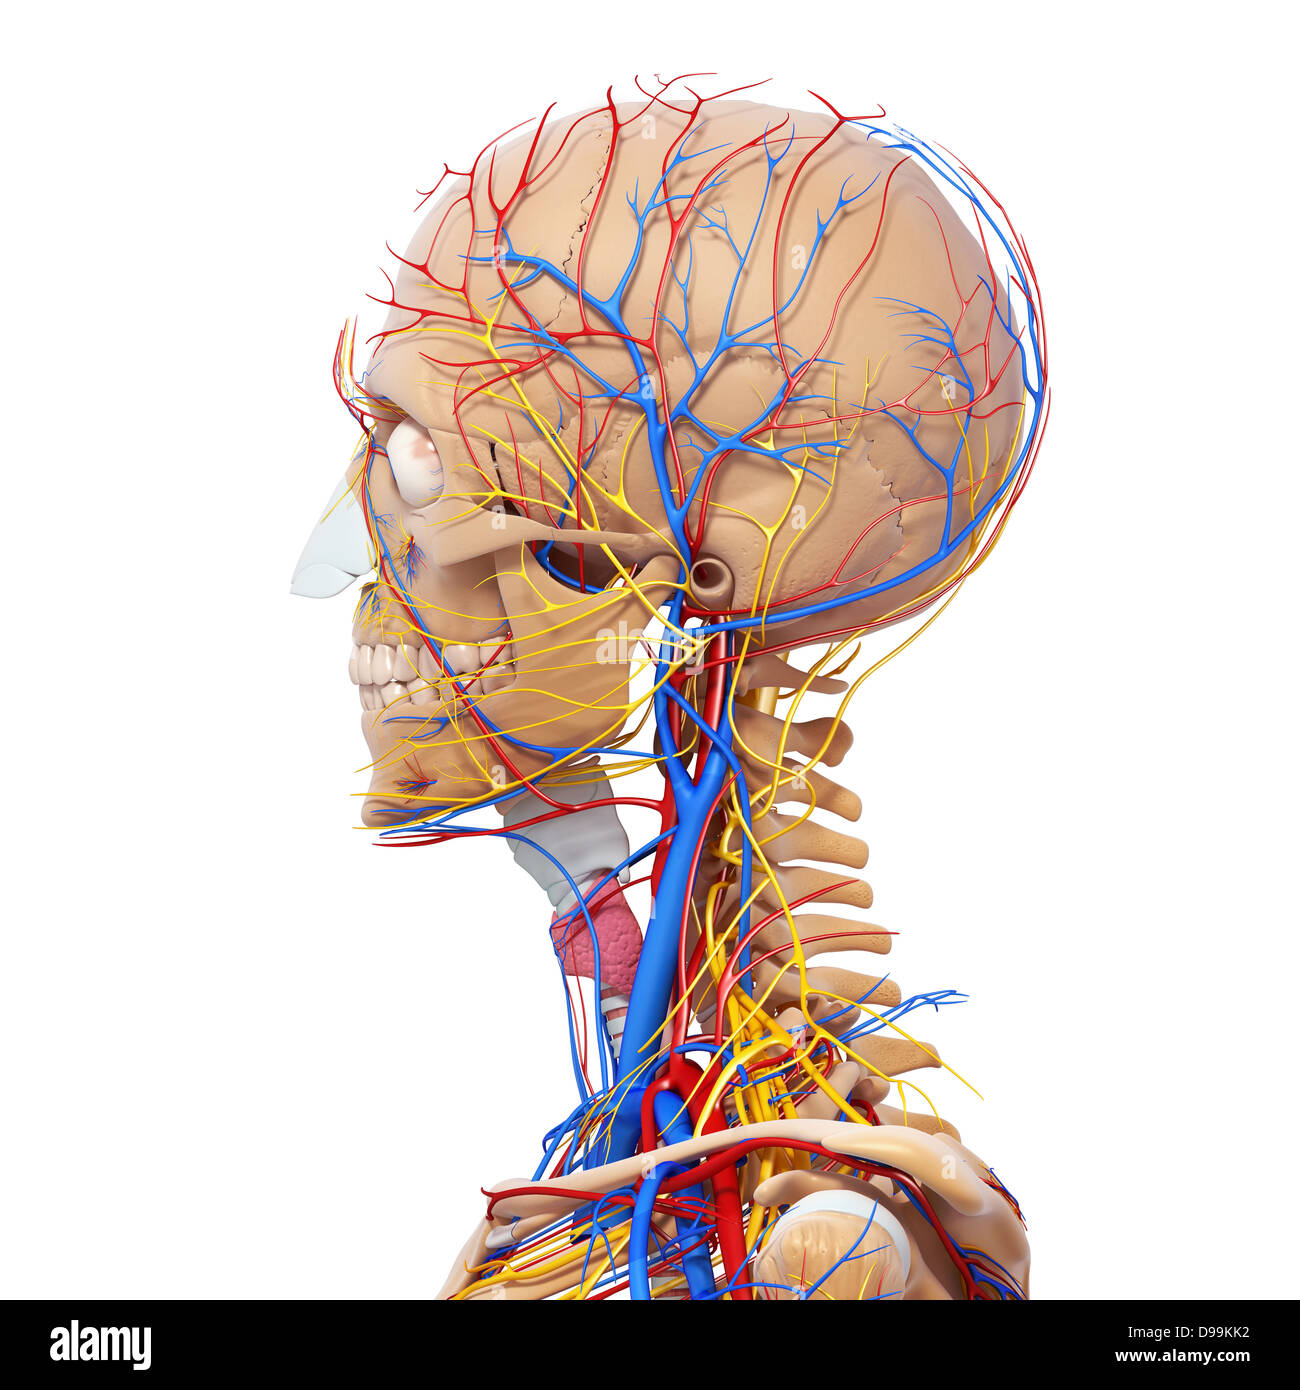 Circulatory nervous and lymphatic system of human head anatomy stock circulatory nervous and lymphatic system of human head anatomy ccuart Image collections